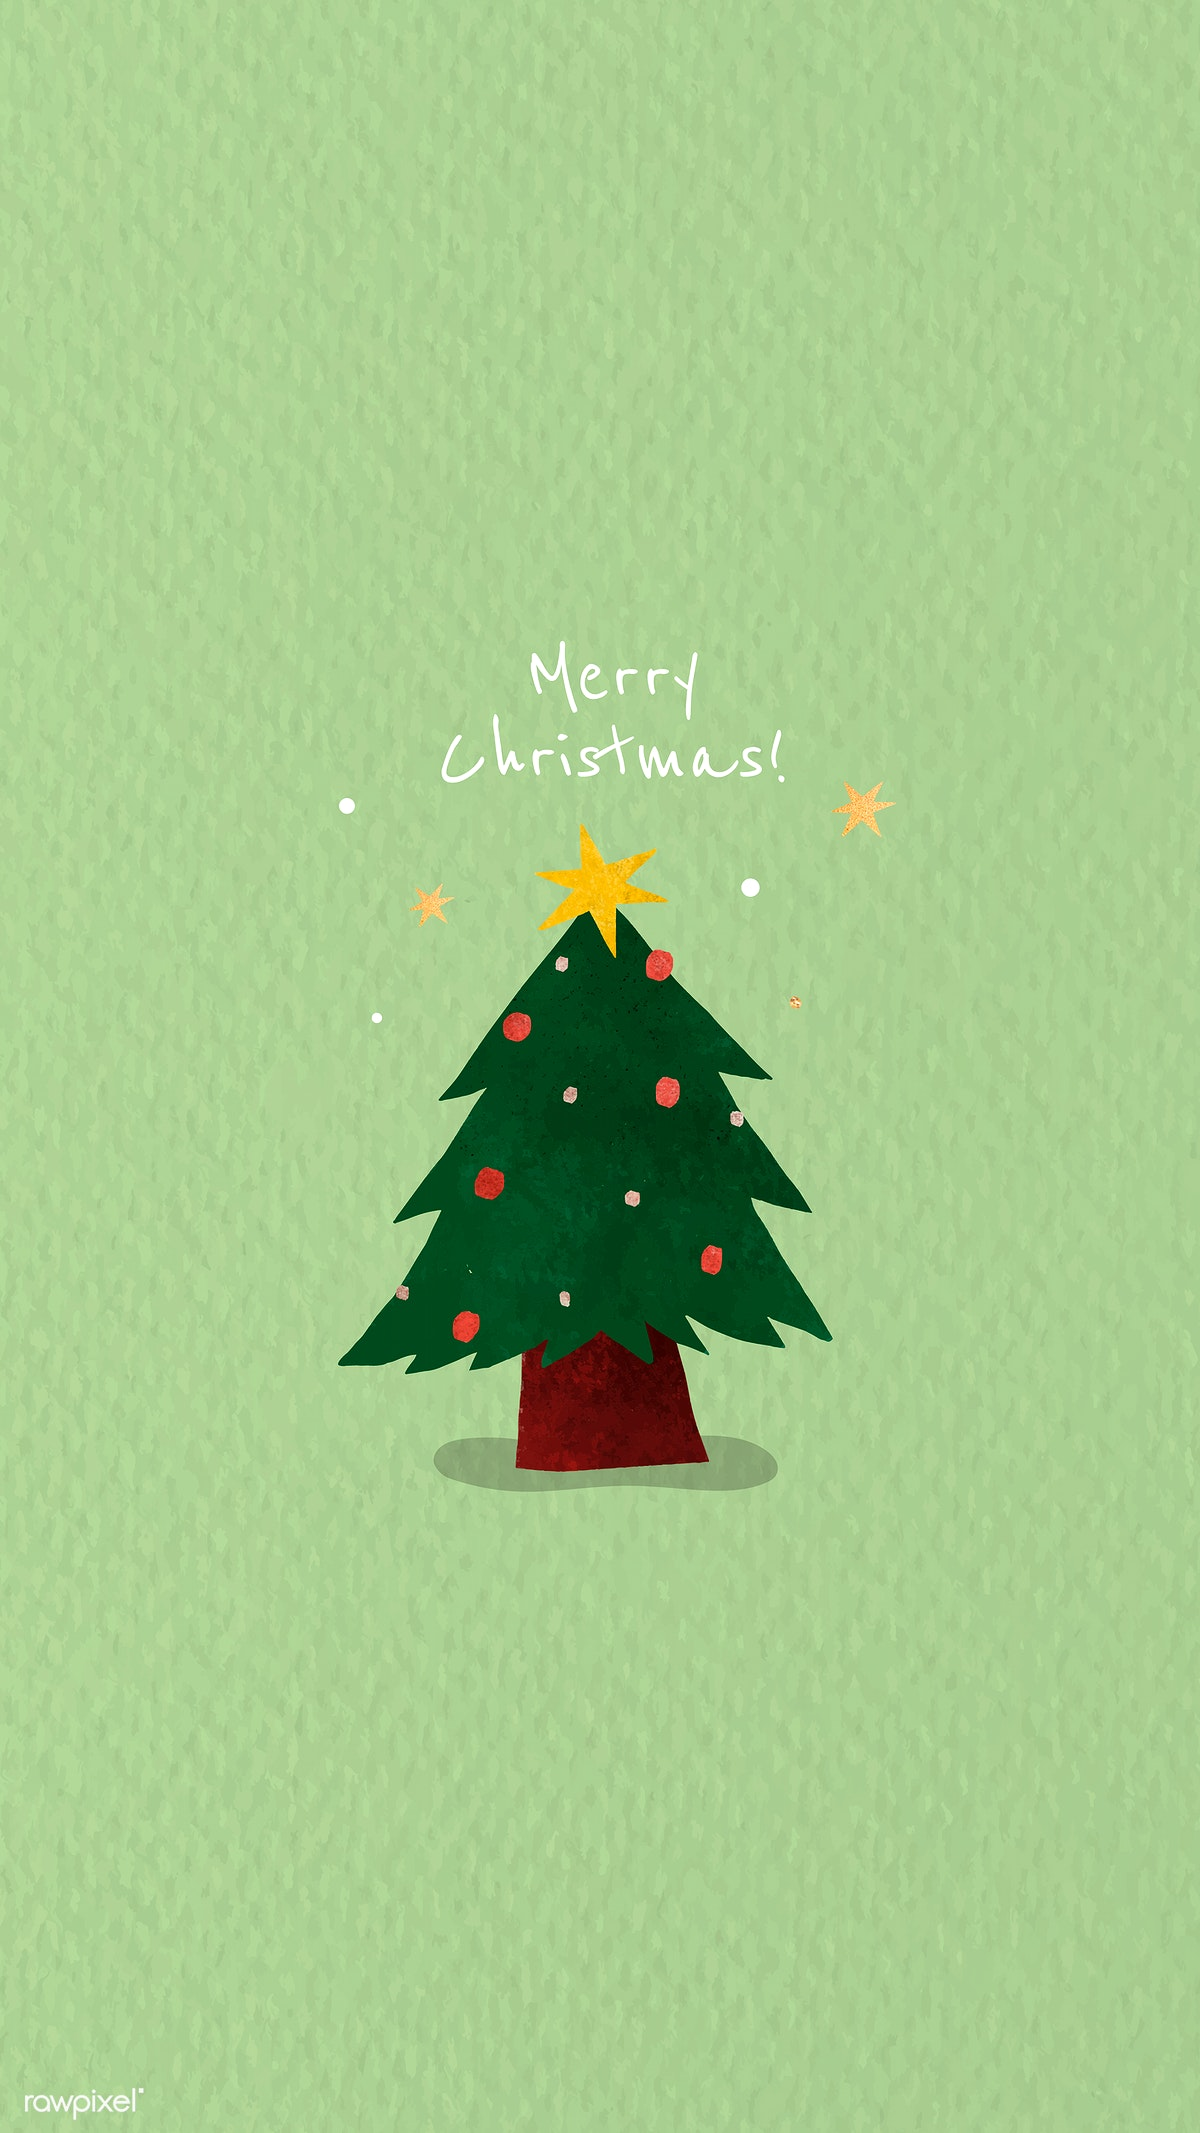 Cute Christmas Backgrounds.Download Premium Image Of Christmas Tree Doodle Background Vector 1227270